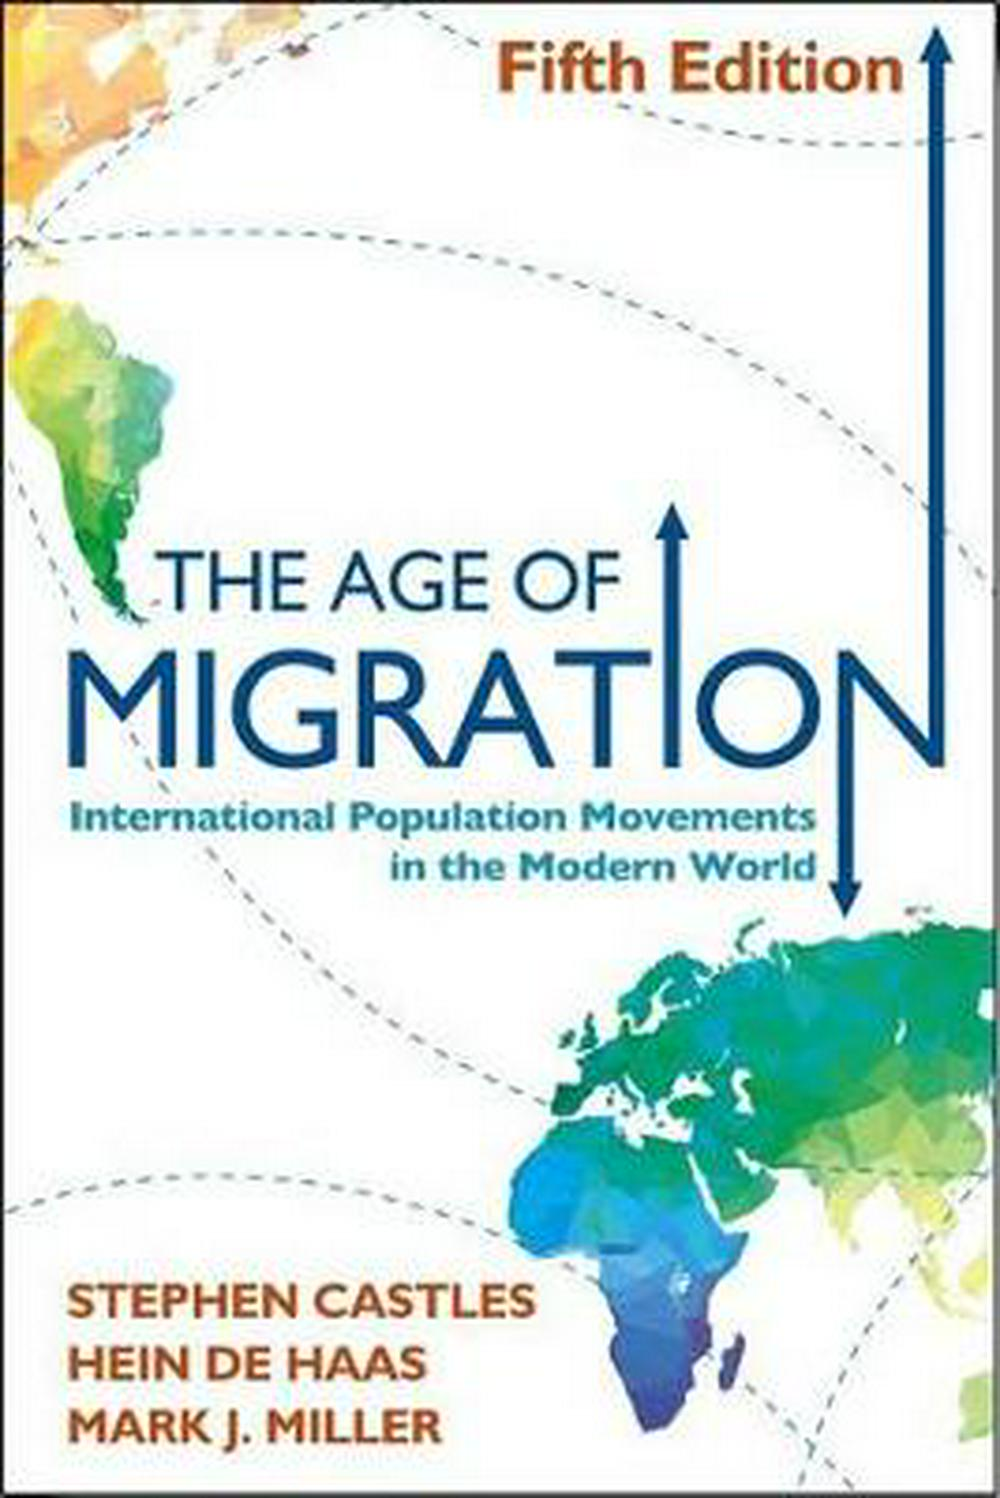 The Age of Migration, Fifth Edition